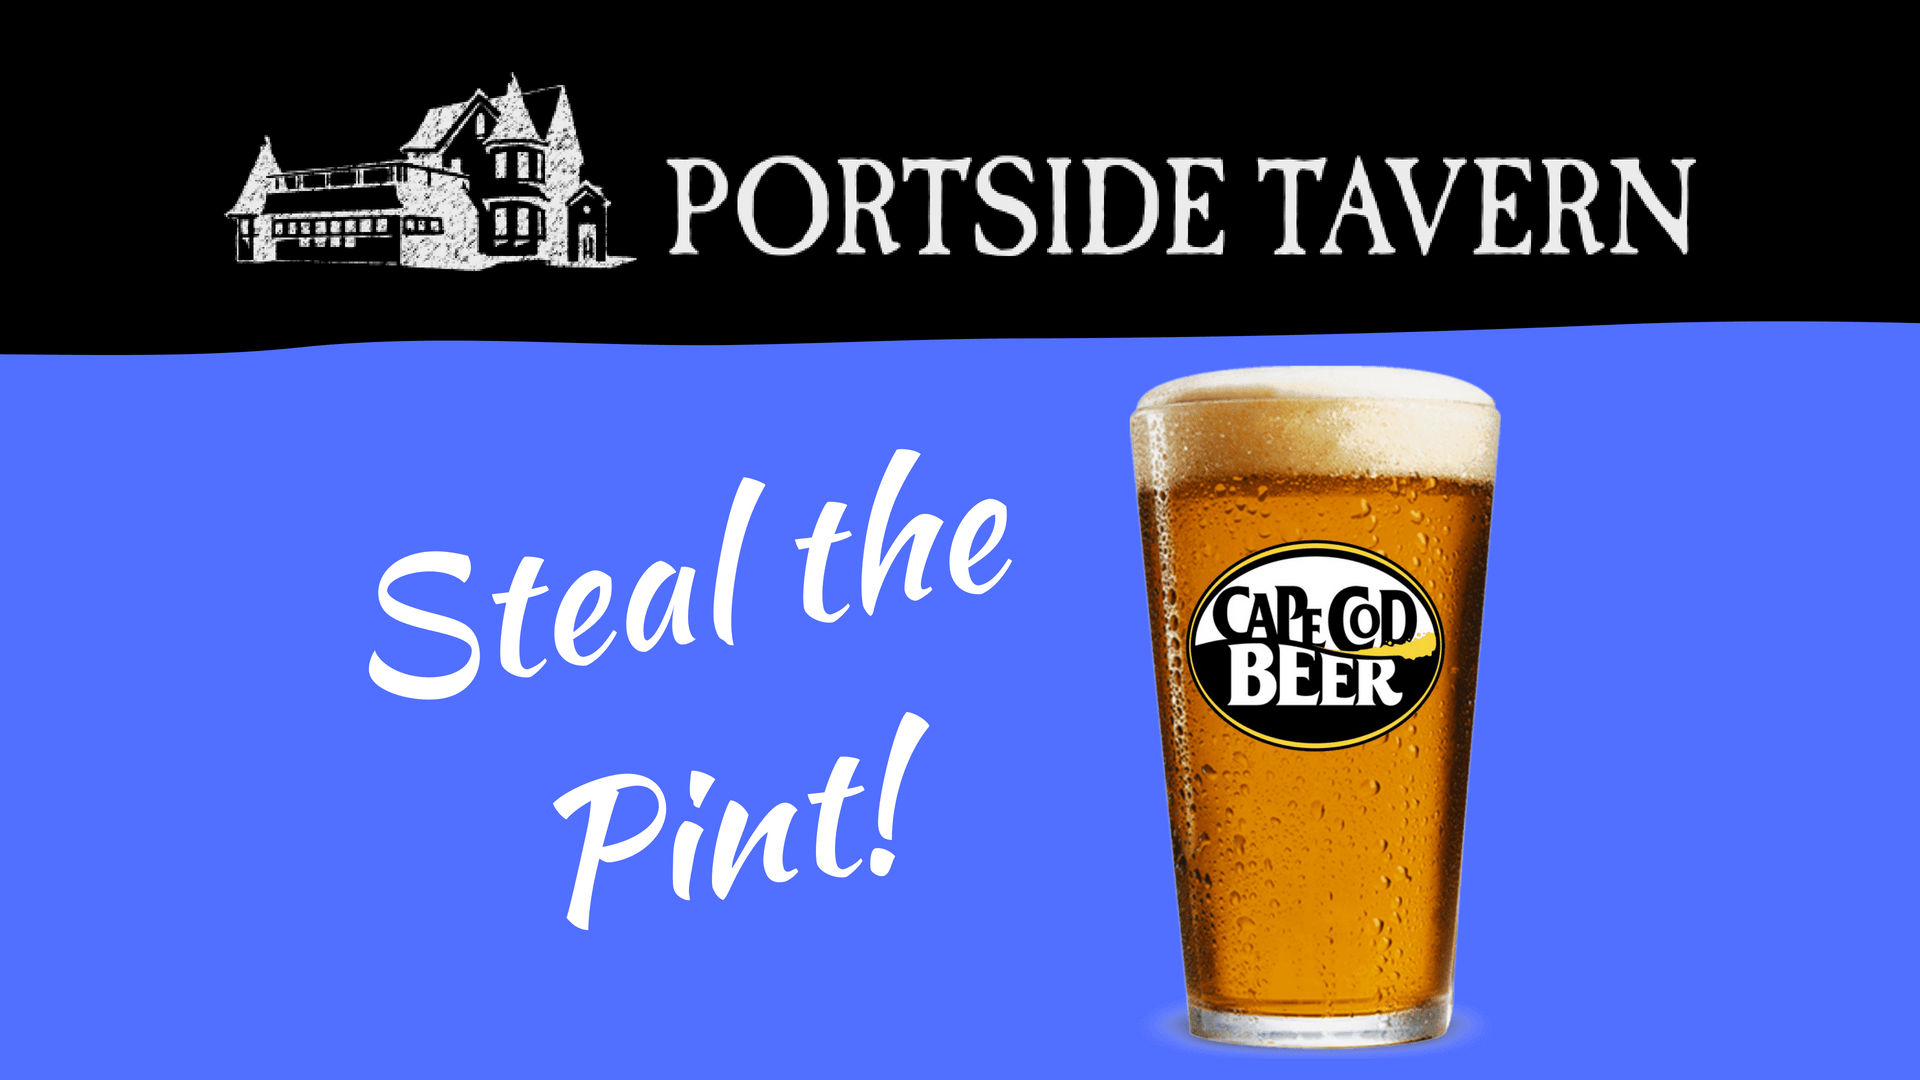 Cape Cod Beer Portside Tavern Steal the Pint